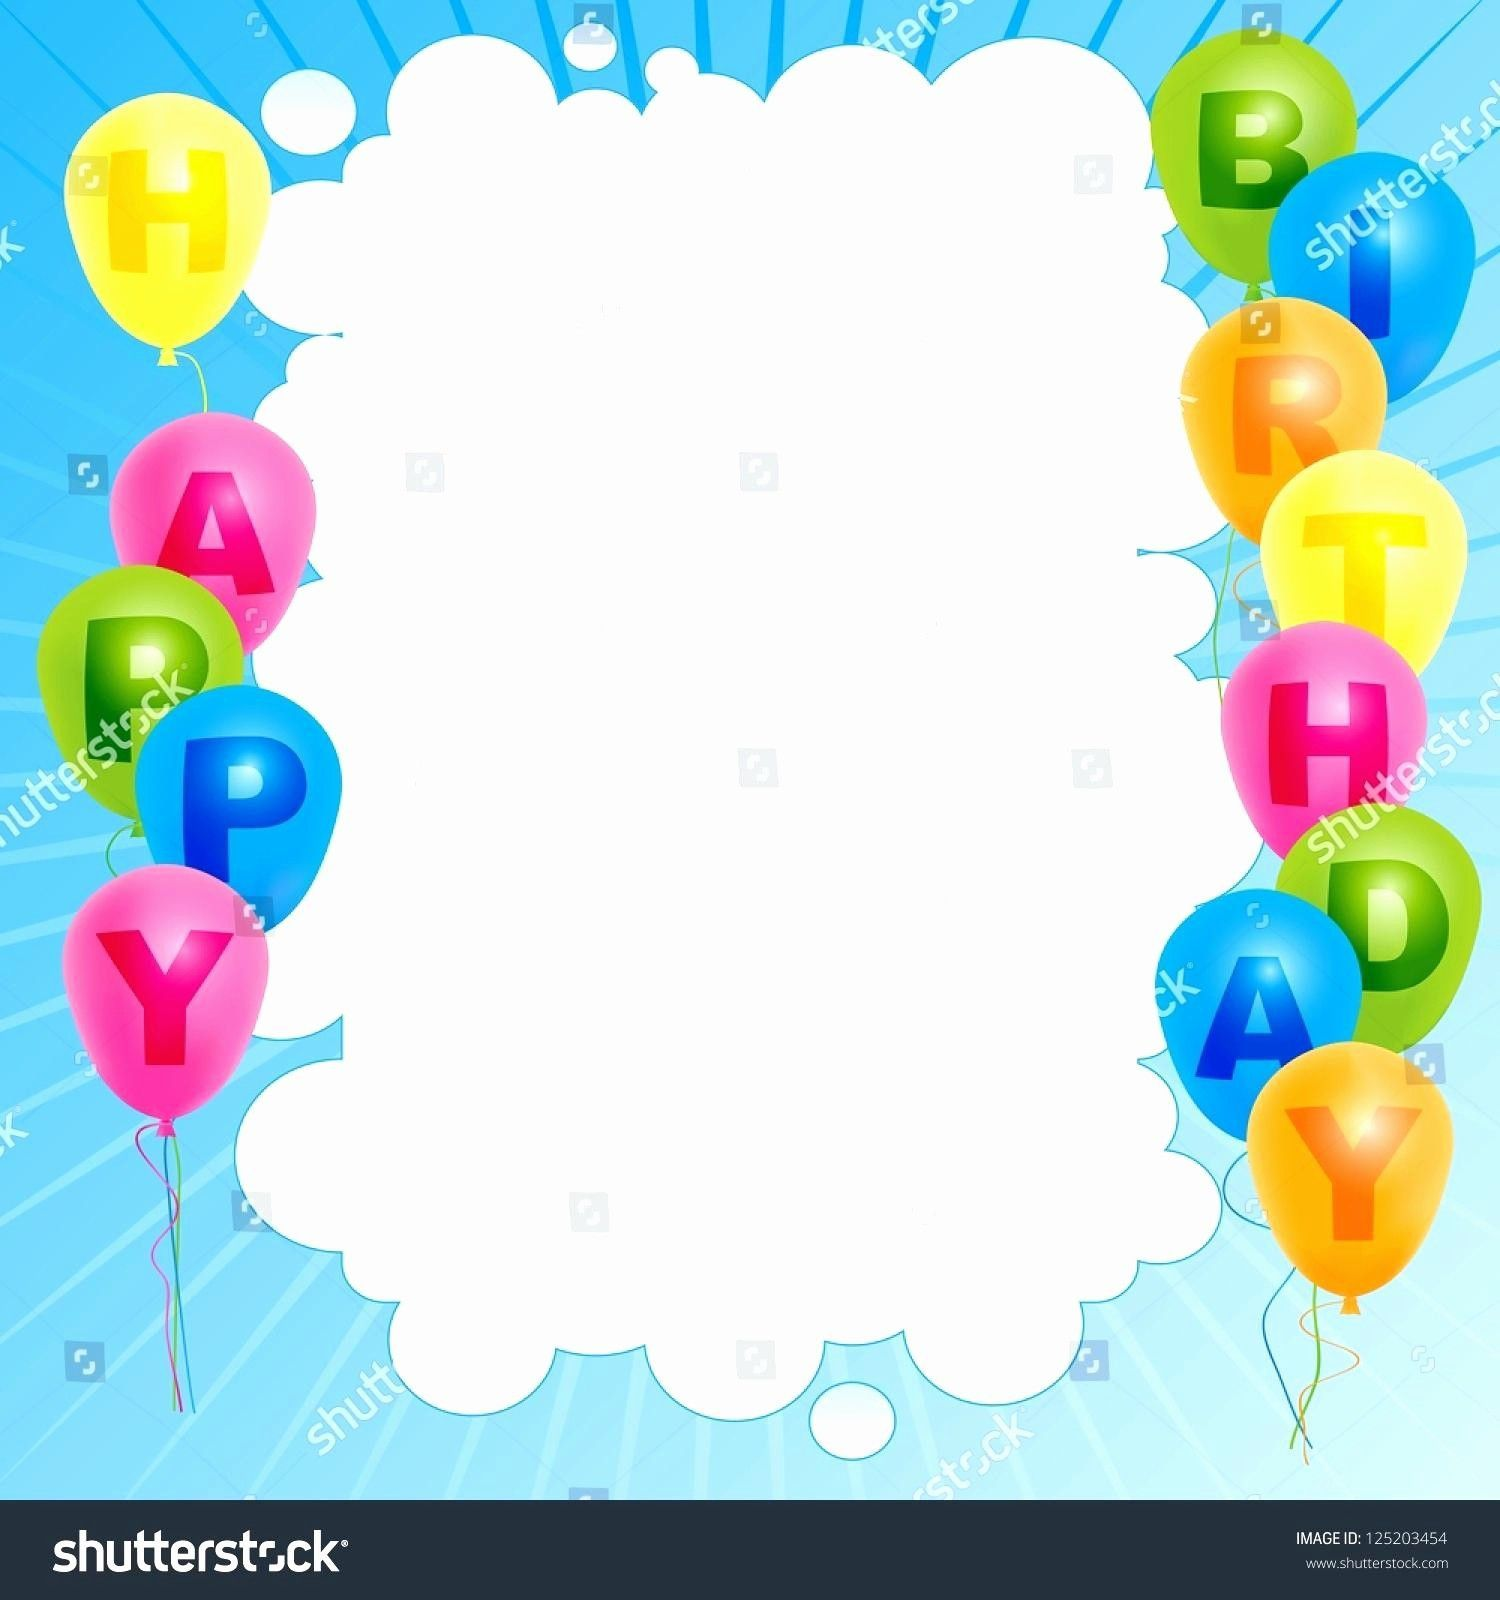 006 Formidable Happy Birthday Card Template For Word High Definition Full